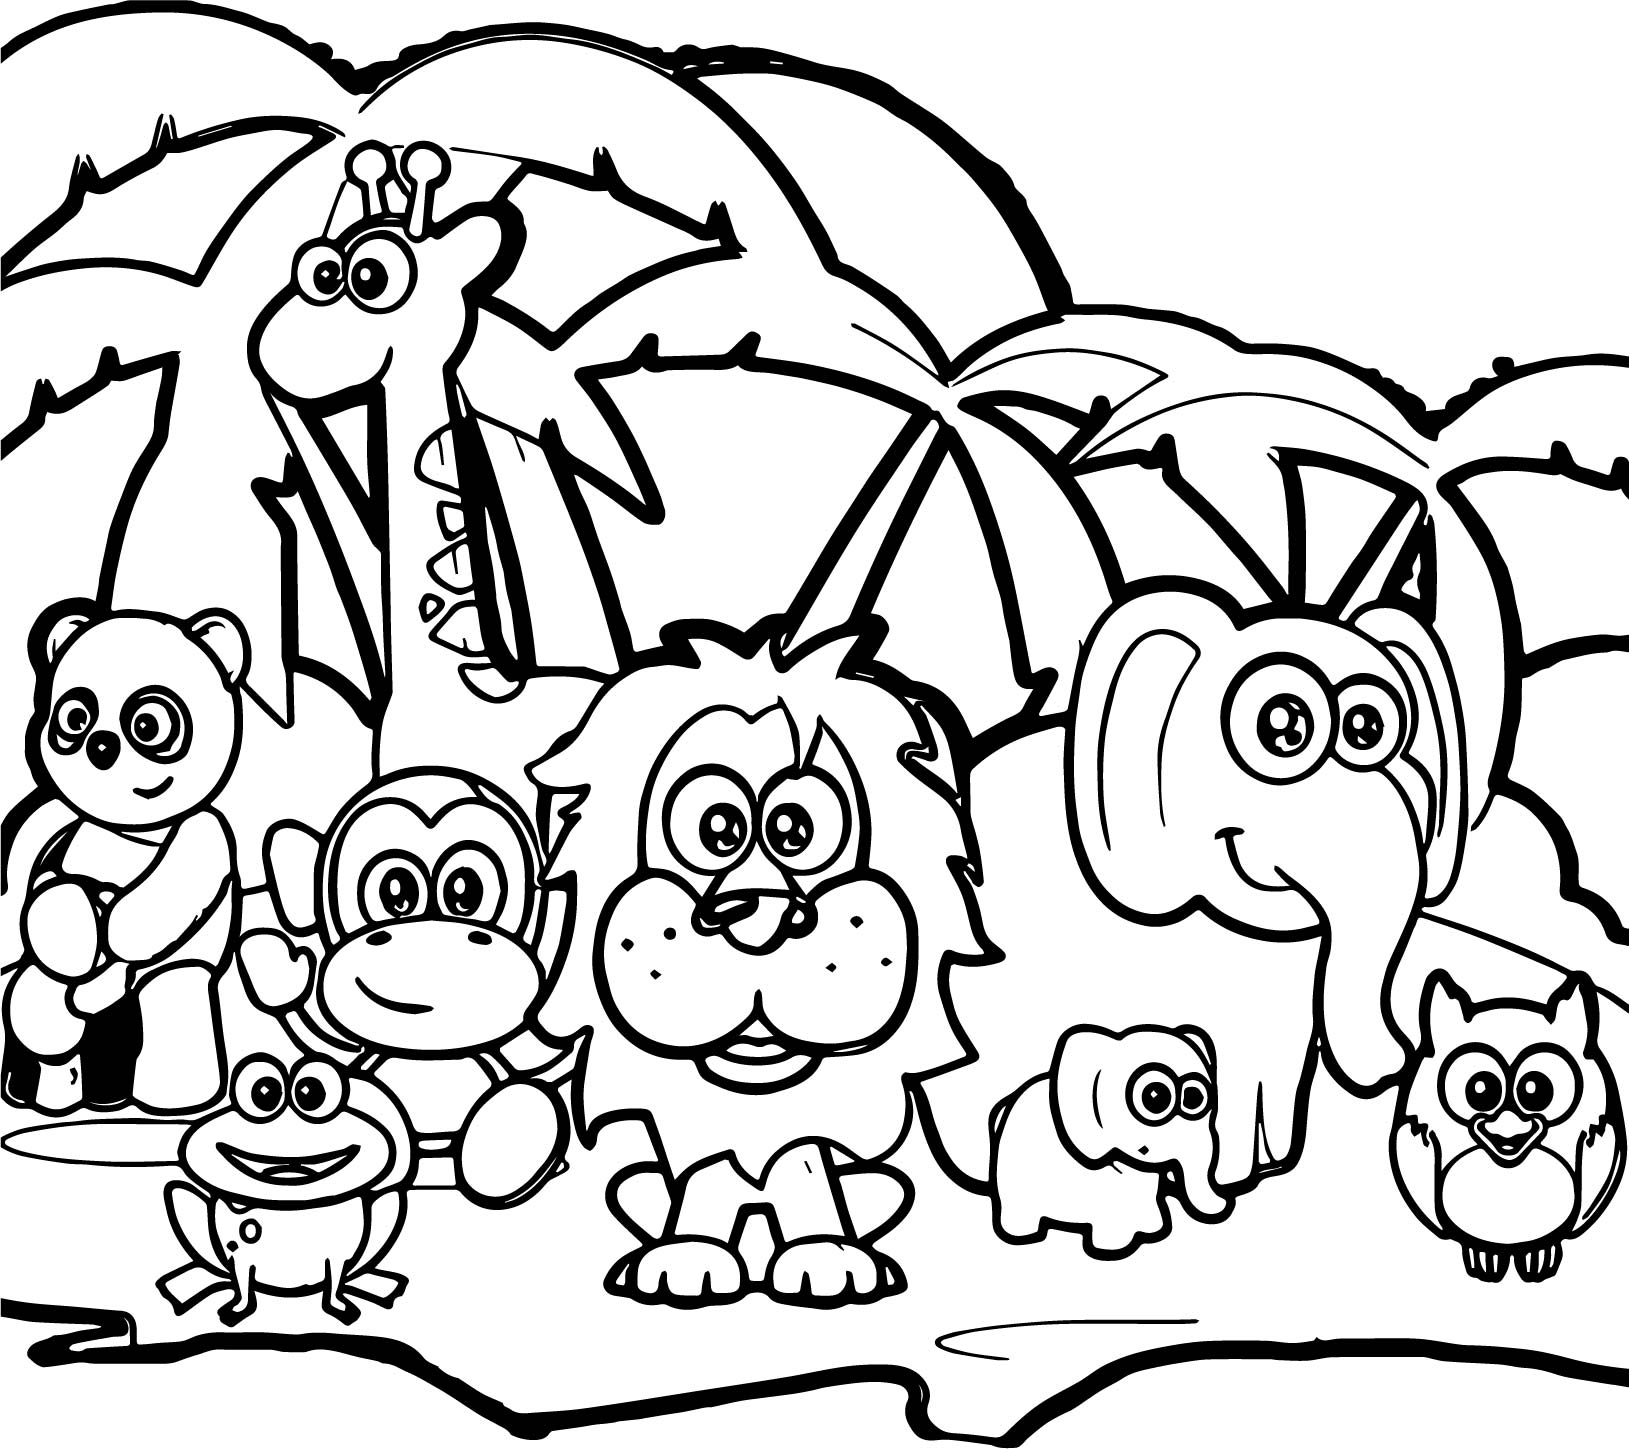 1629x1449 Moose In The Forest Free Animal Coloring Pages Adorable Animals